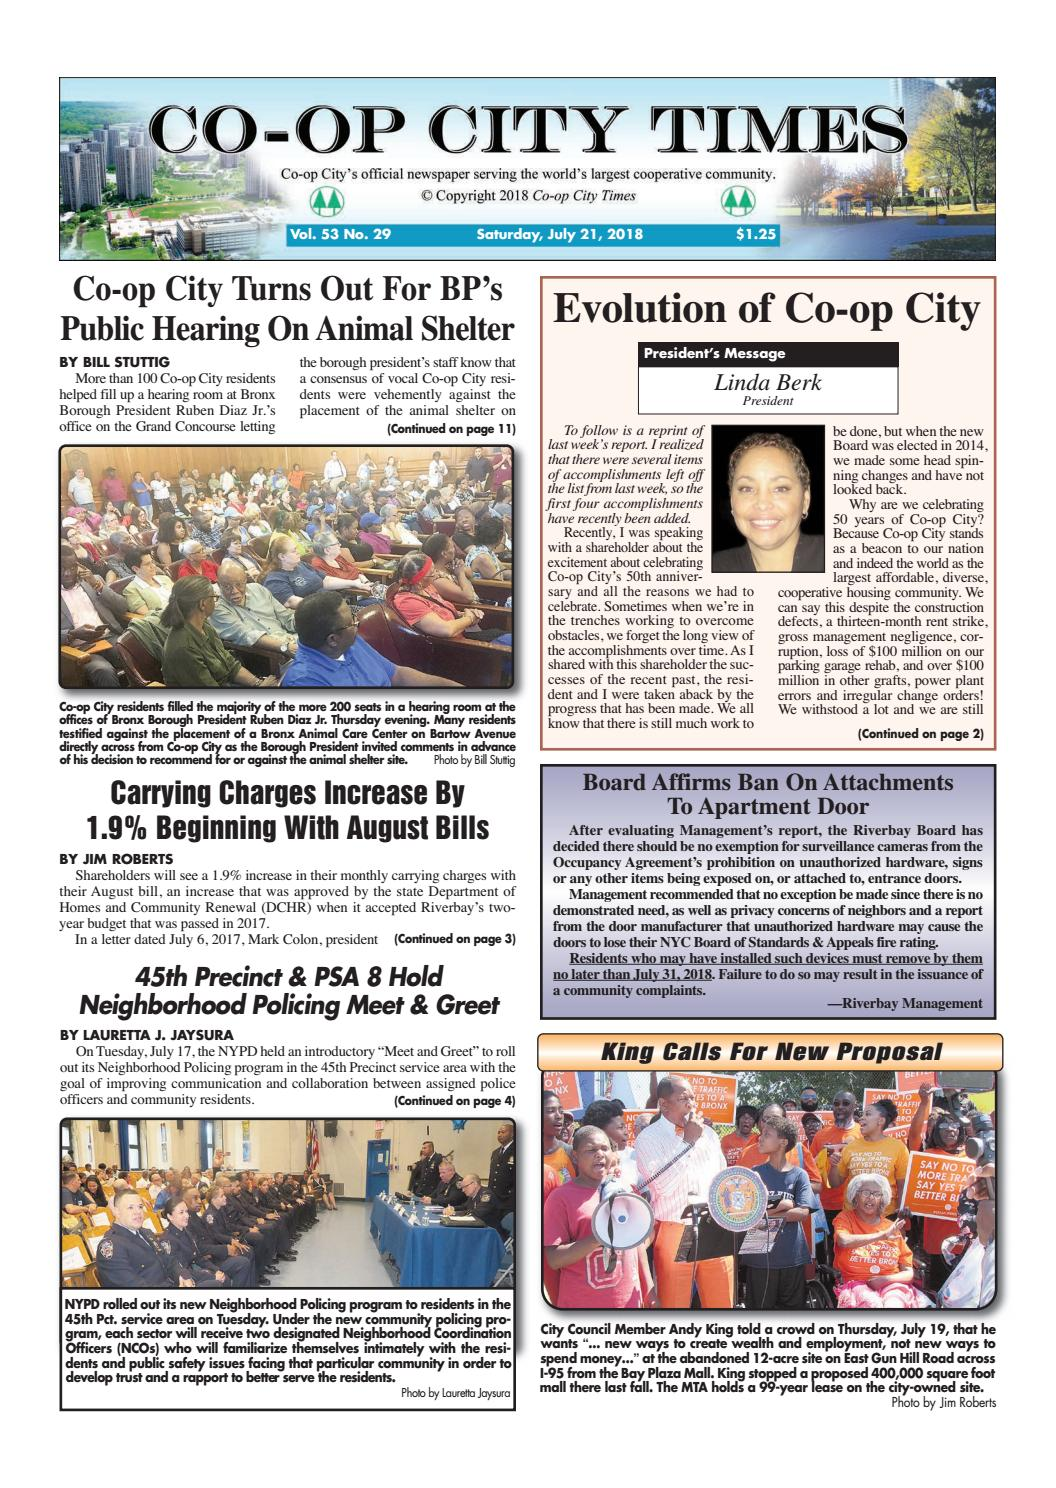 6ec2dda88e78 Co-op City Times 7 21 18 by Co-op City Times - issuu